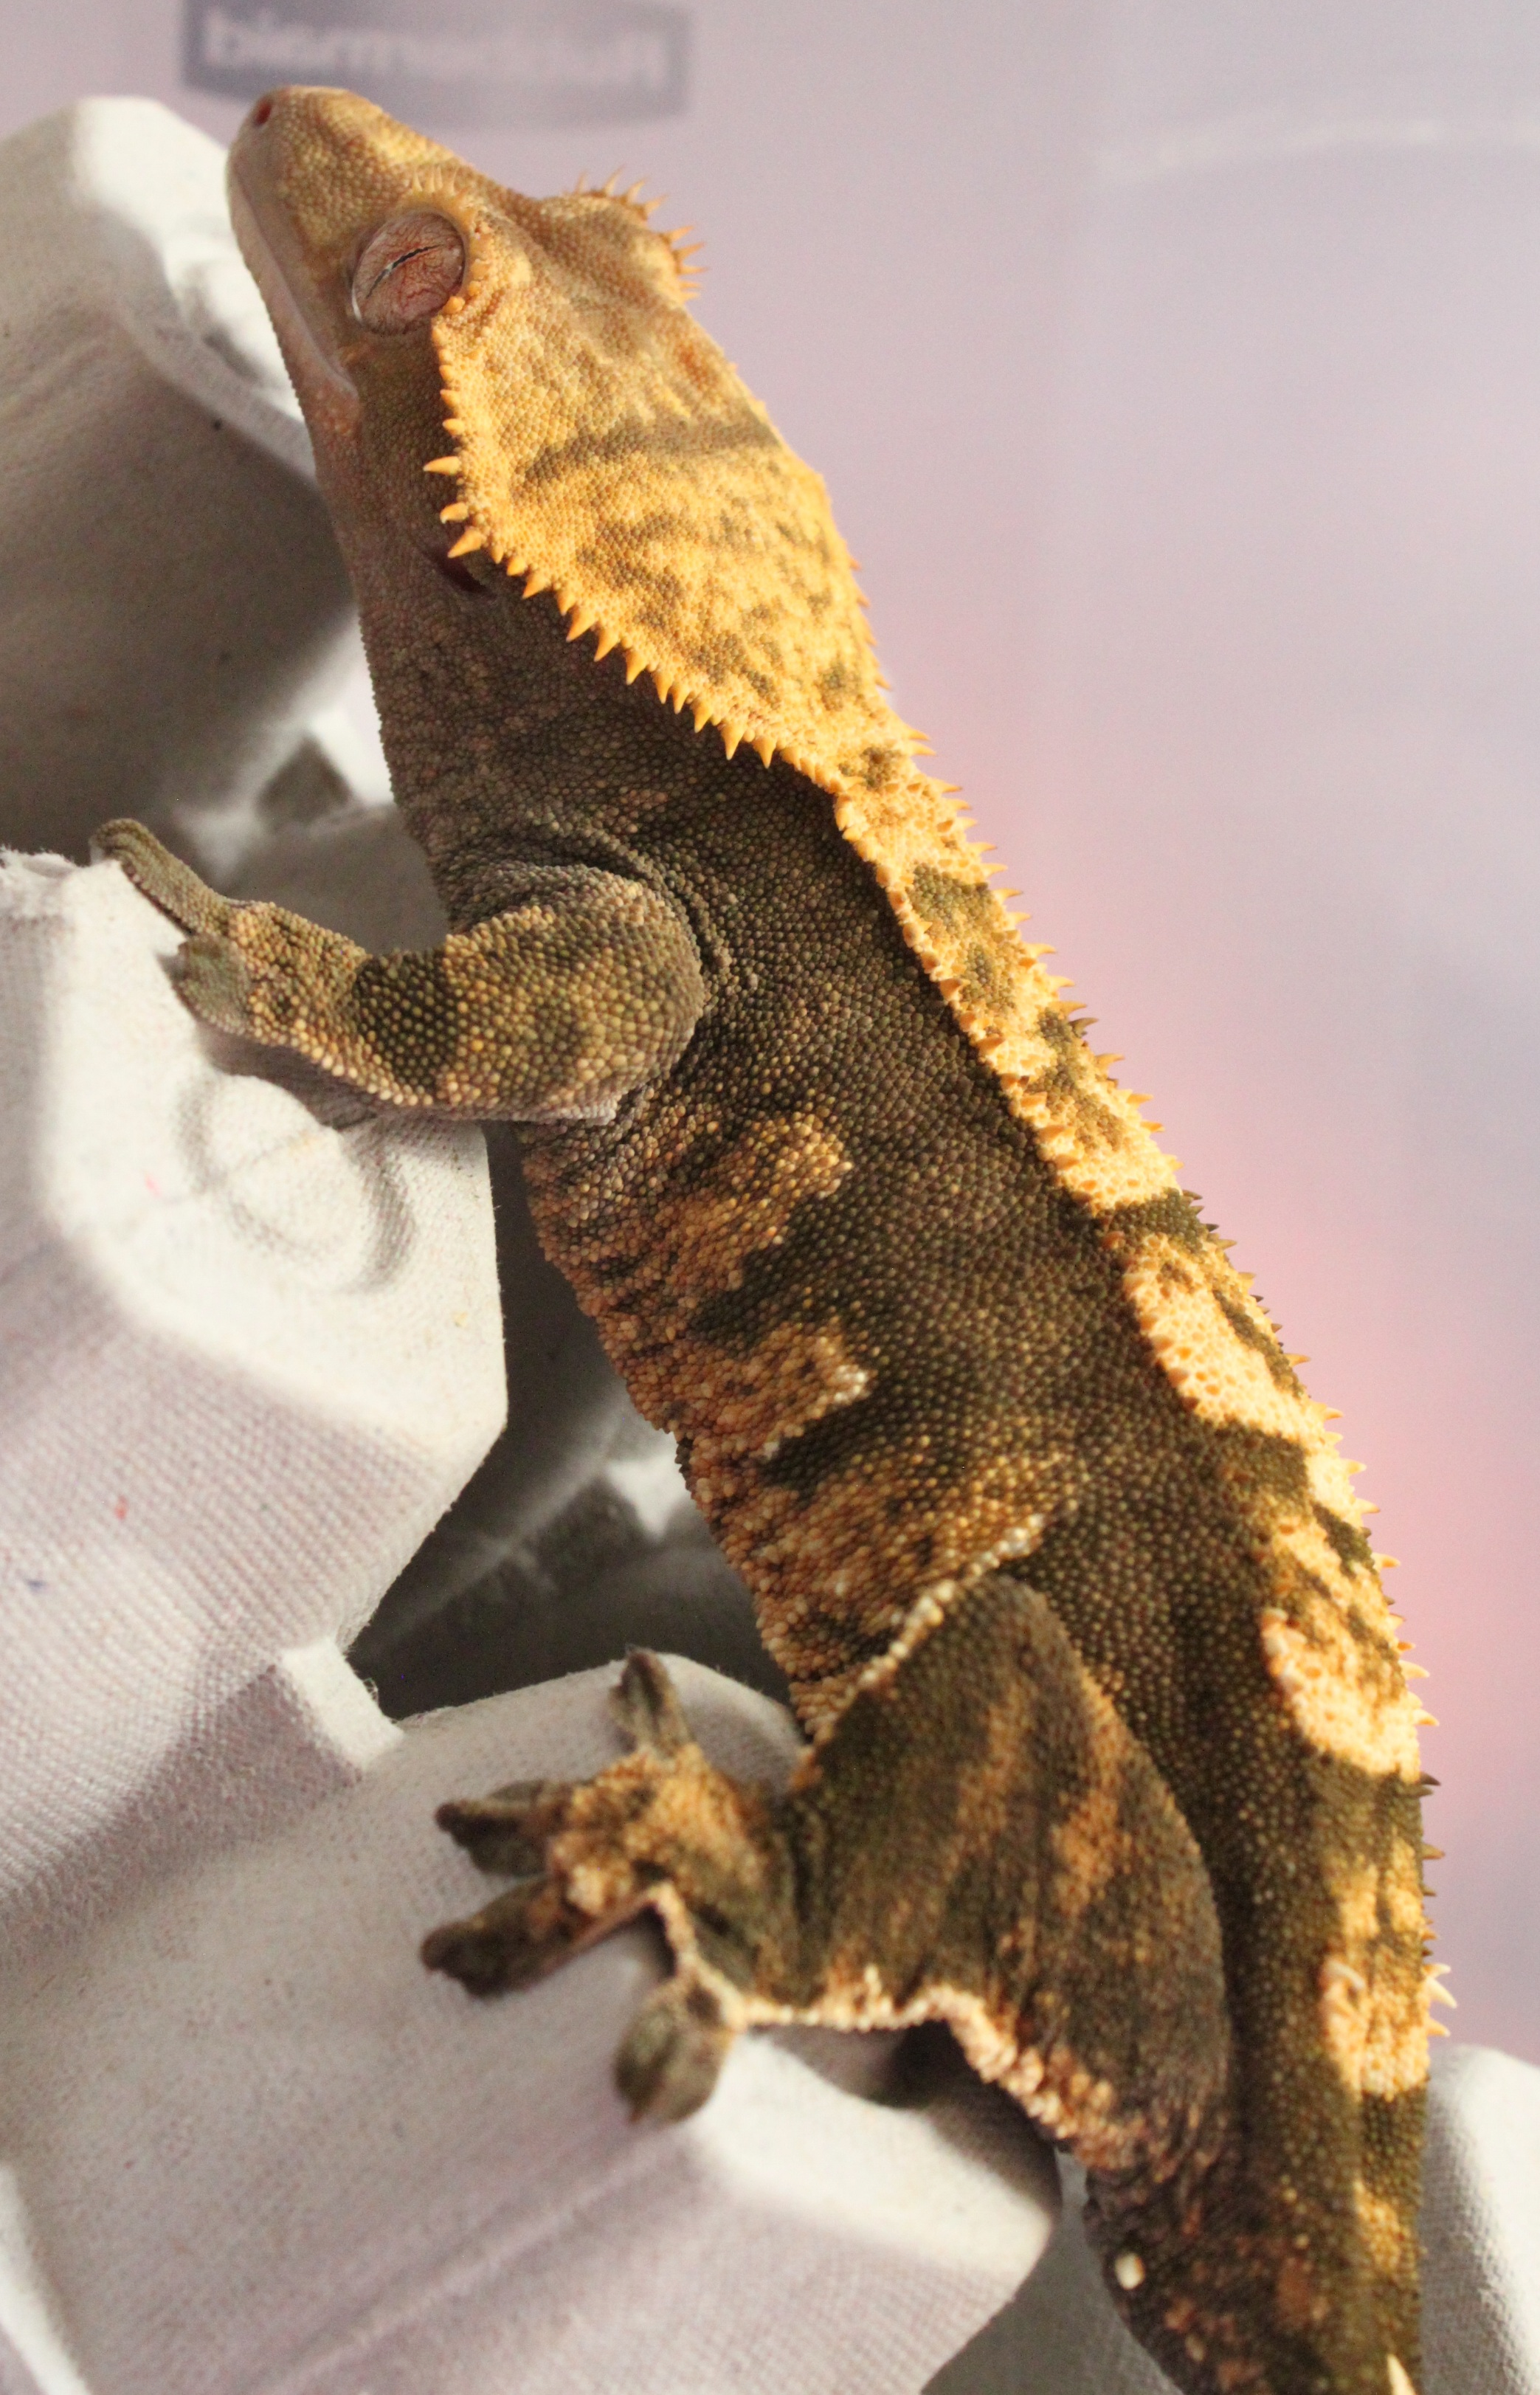 Ember - A Harlequin: Mother of 4 of my baby crested geckos, Ember was the Gecko who started it all! She was my first gecko I got back in December of 2014 at the age of 2-3 months! She's also the only gecko I've bought at a chain pet store and she's also the last, as I only buy from breeders now, as most breeders can not only provide hatch dates, weight records and lineage, they also take way better care of their babies than say, petco or petsmart. Ember is a gentle girl as well as a big girl at 9 inches long! She's very social and loves to fall asleep on my shoulder!